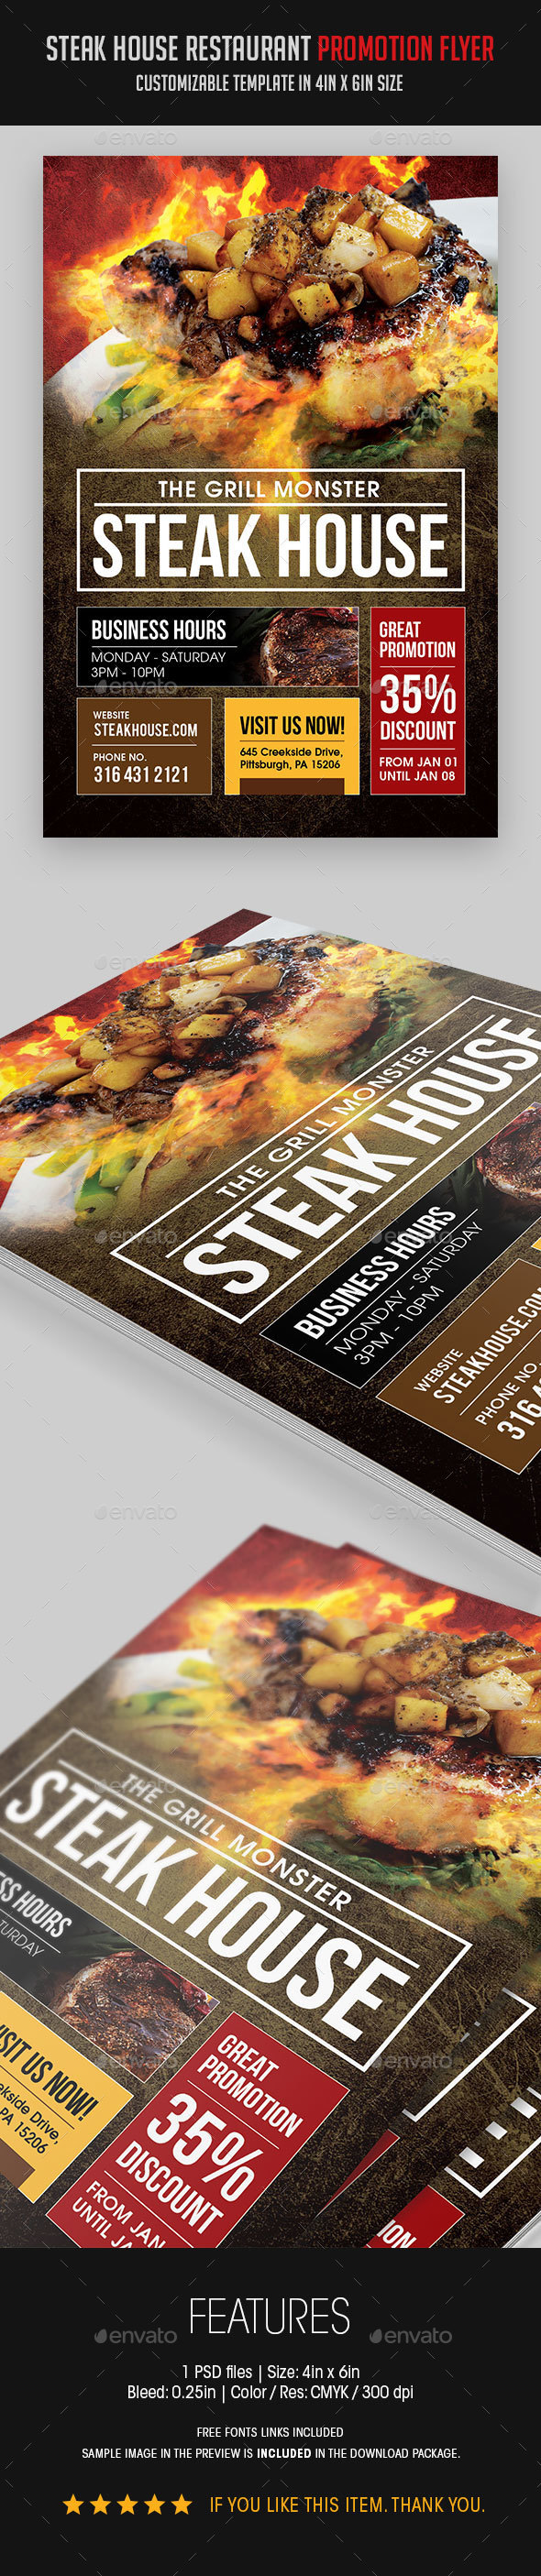 Steak House BBQ Restaurant Flyer